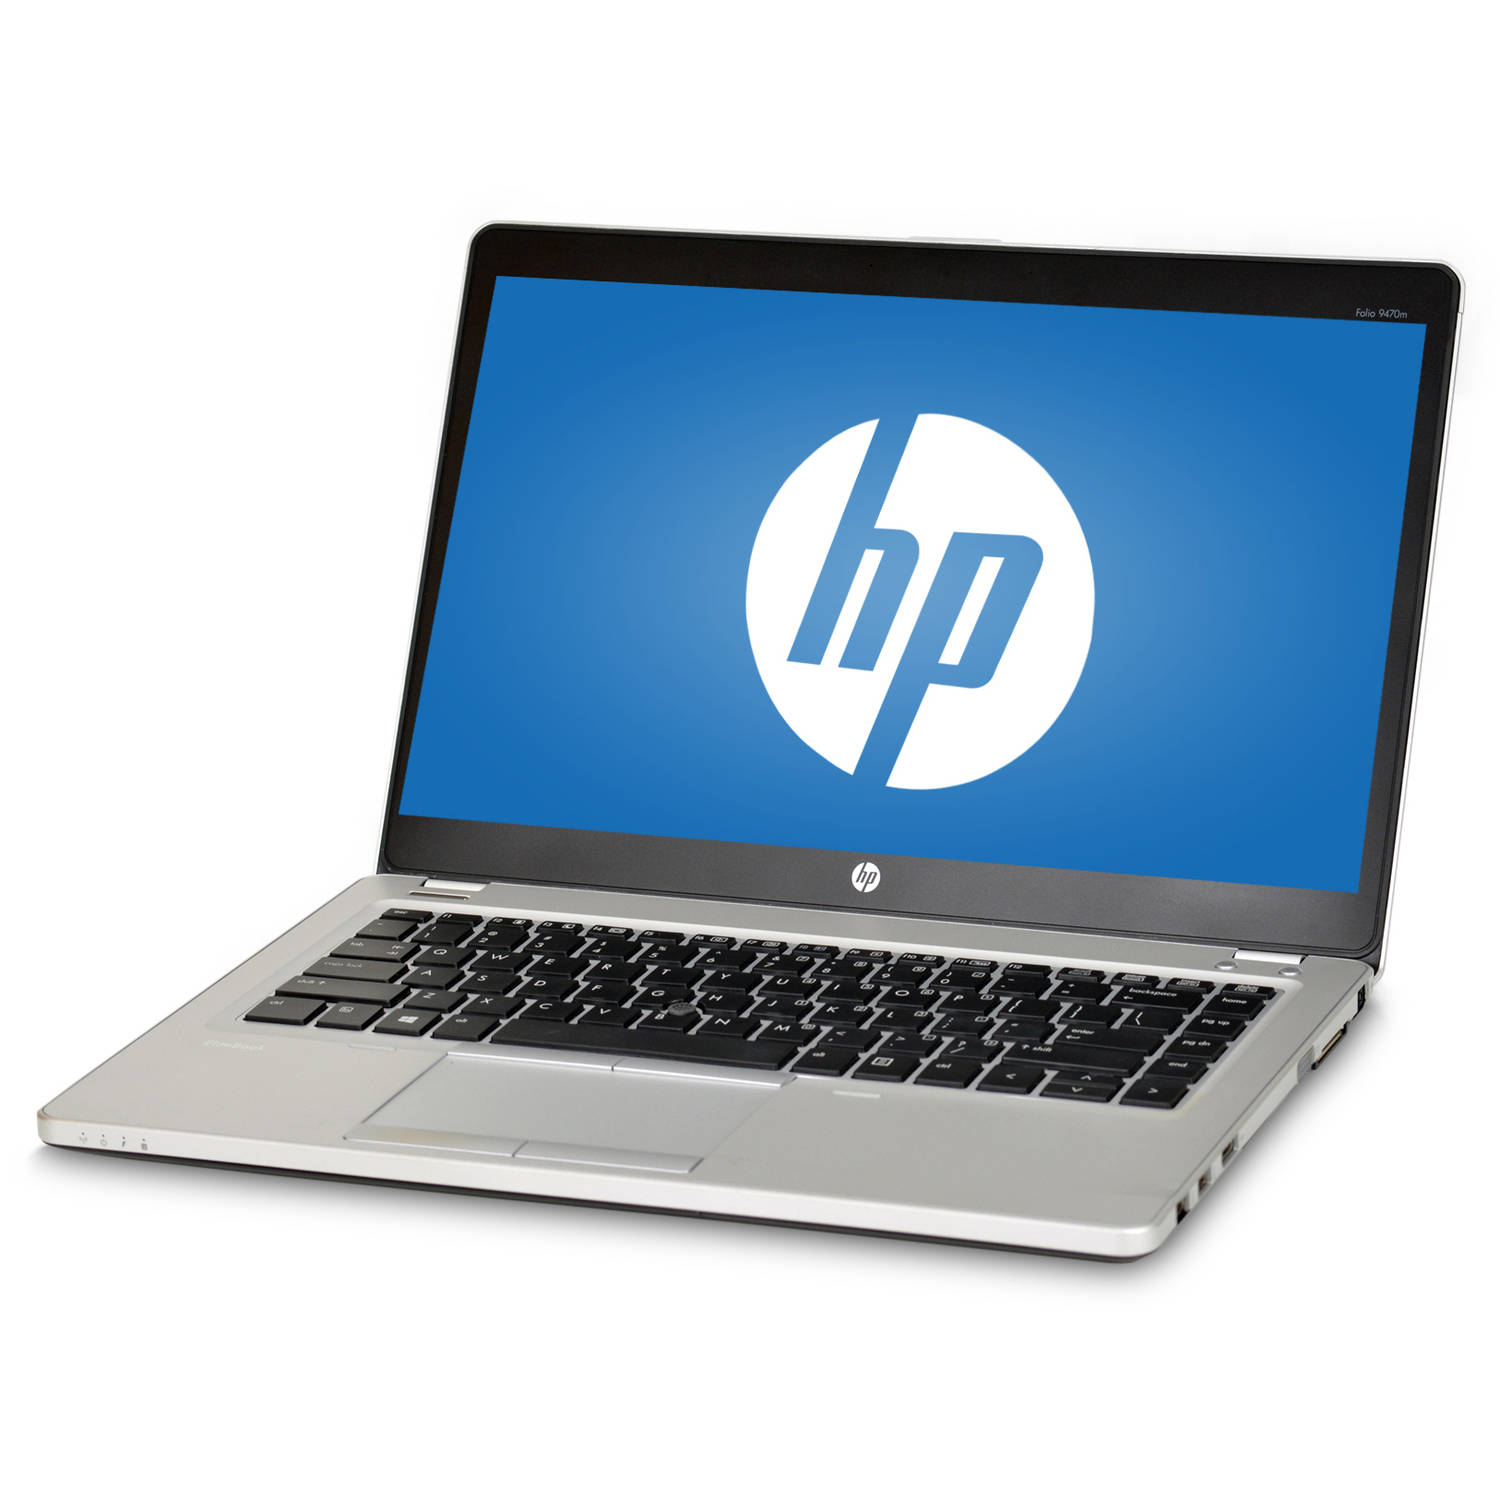 HP EliteBook Folio 9470m Intel PROSet/WLAN New